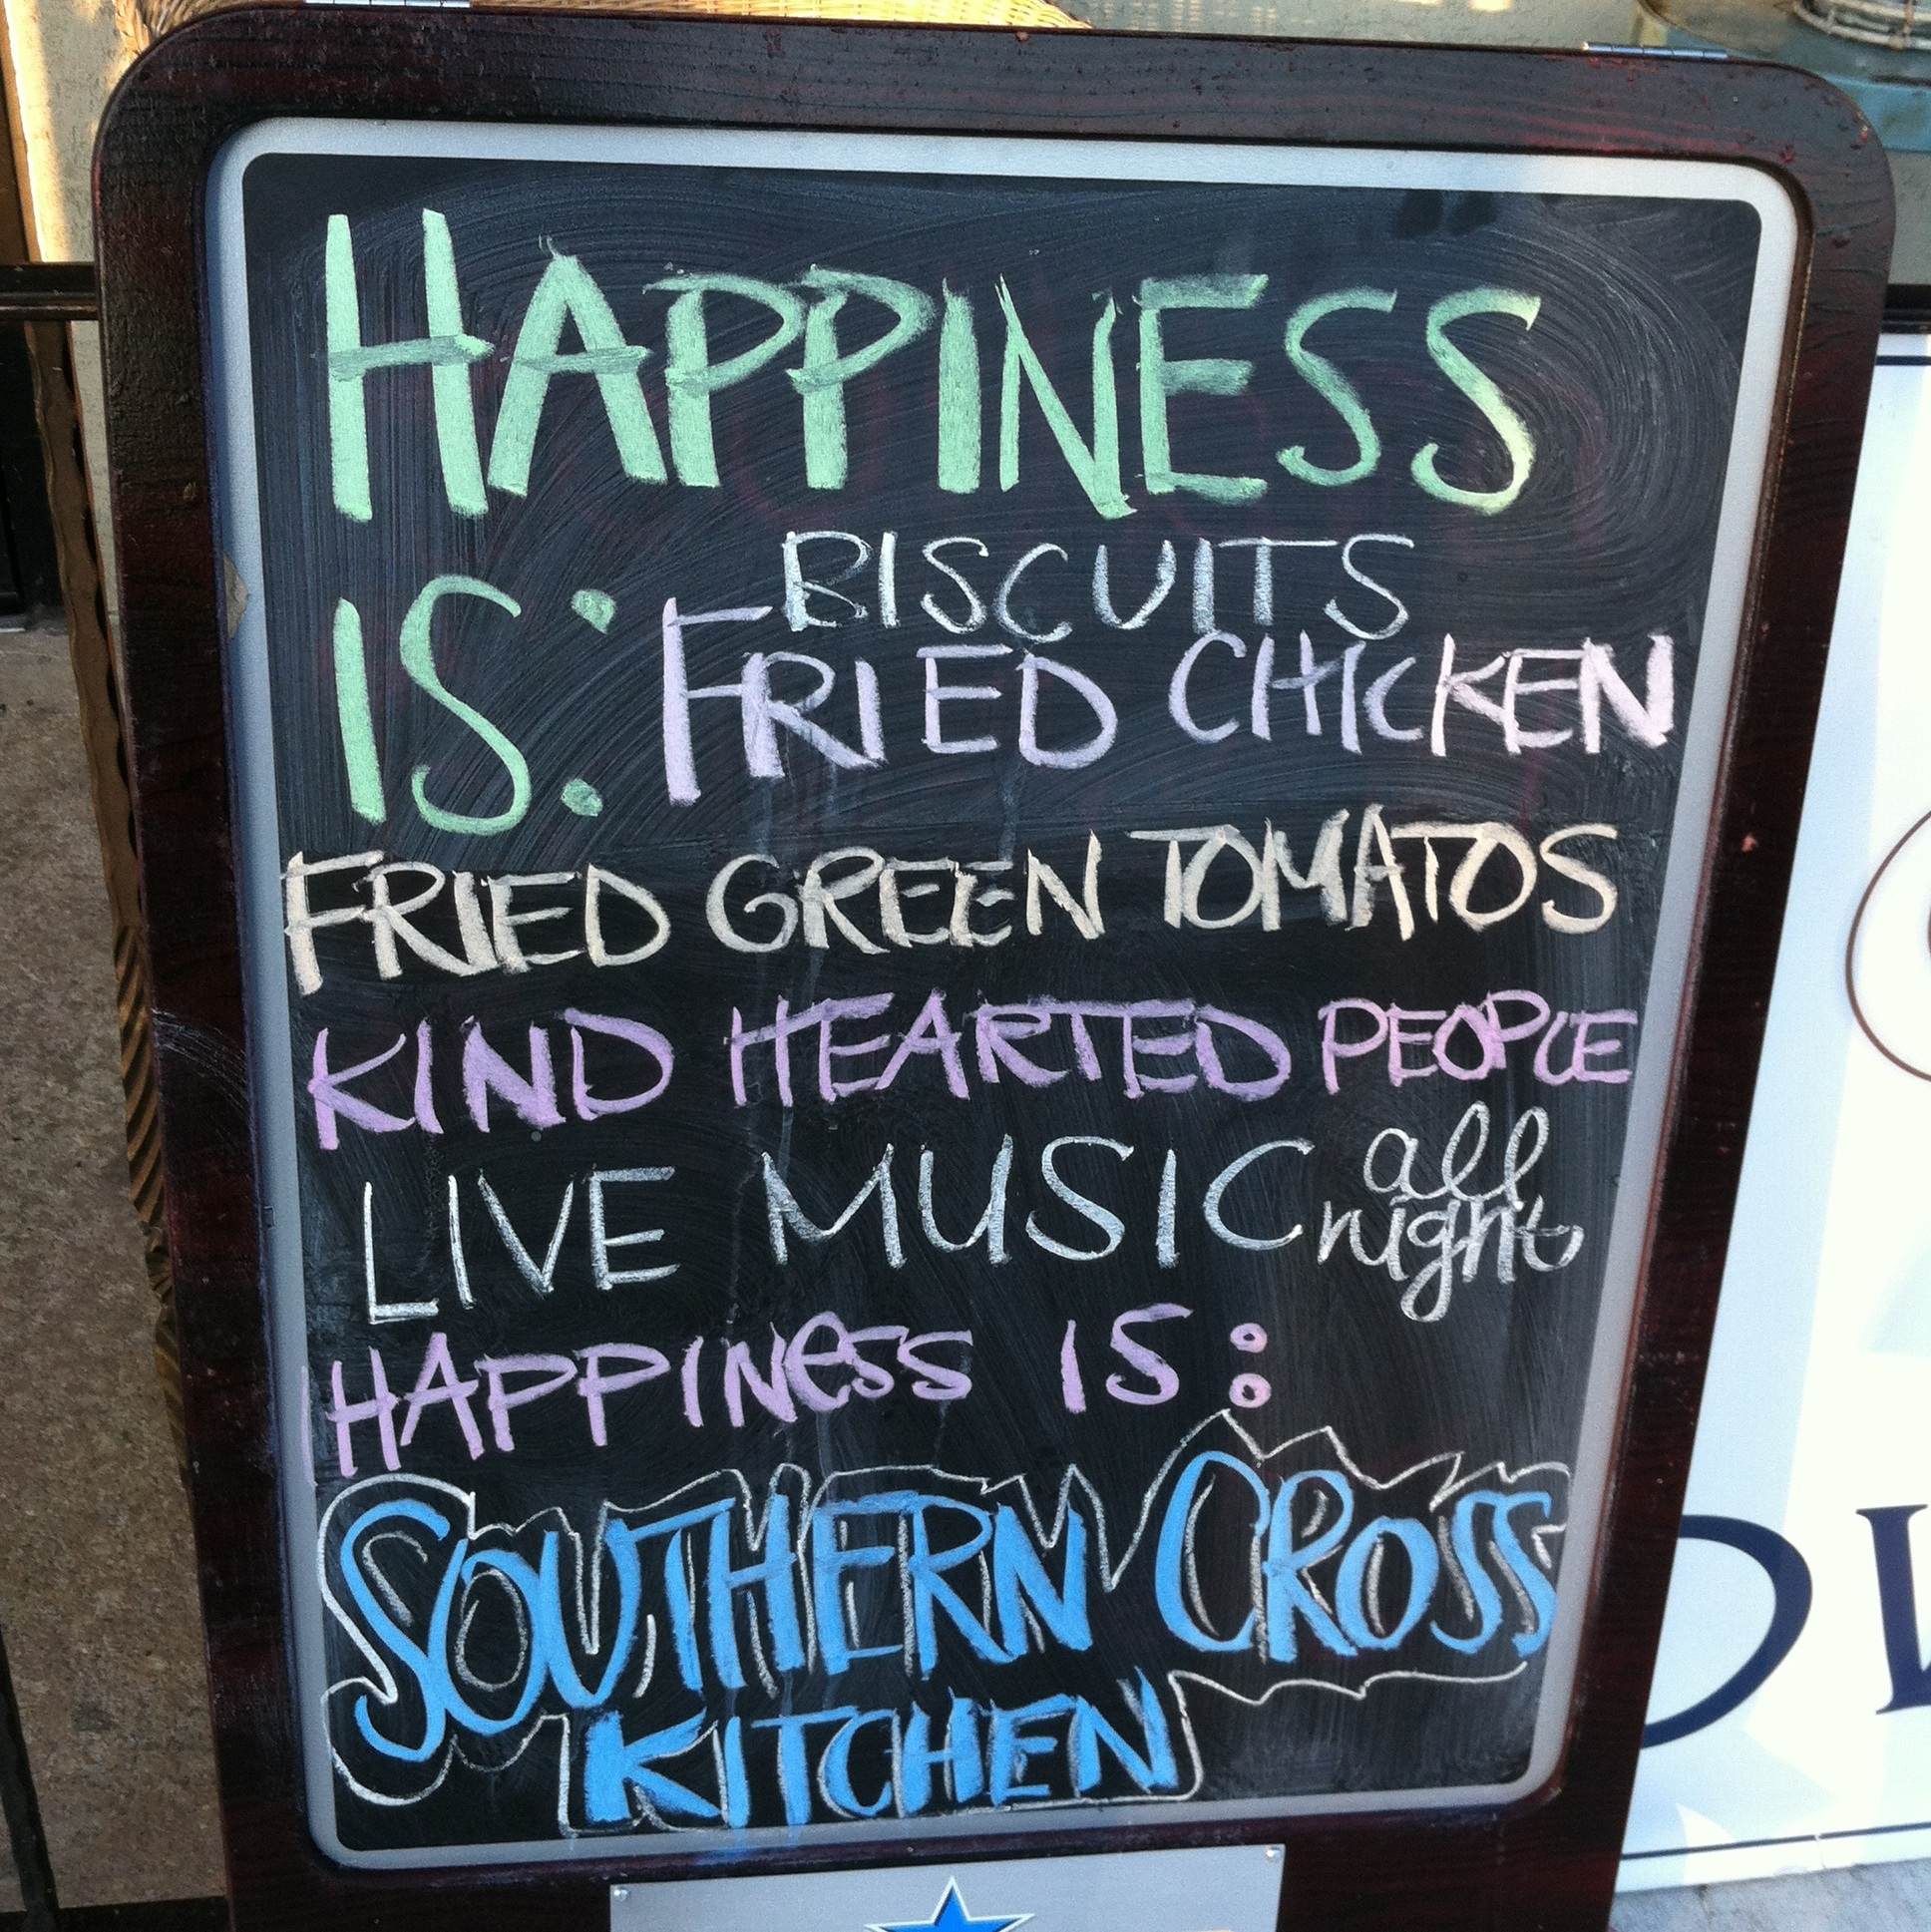 restaurant review: southern cross kitchen in conshohocken, pa